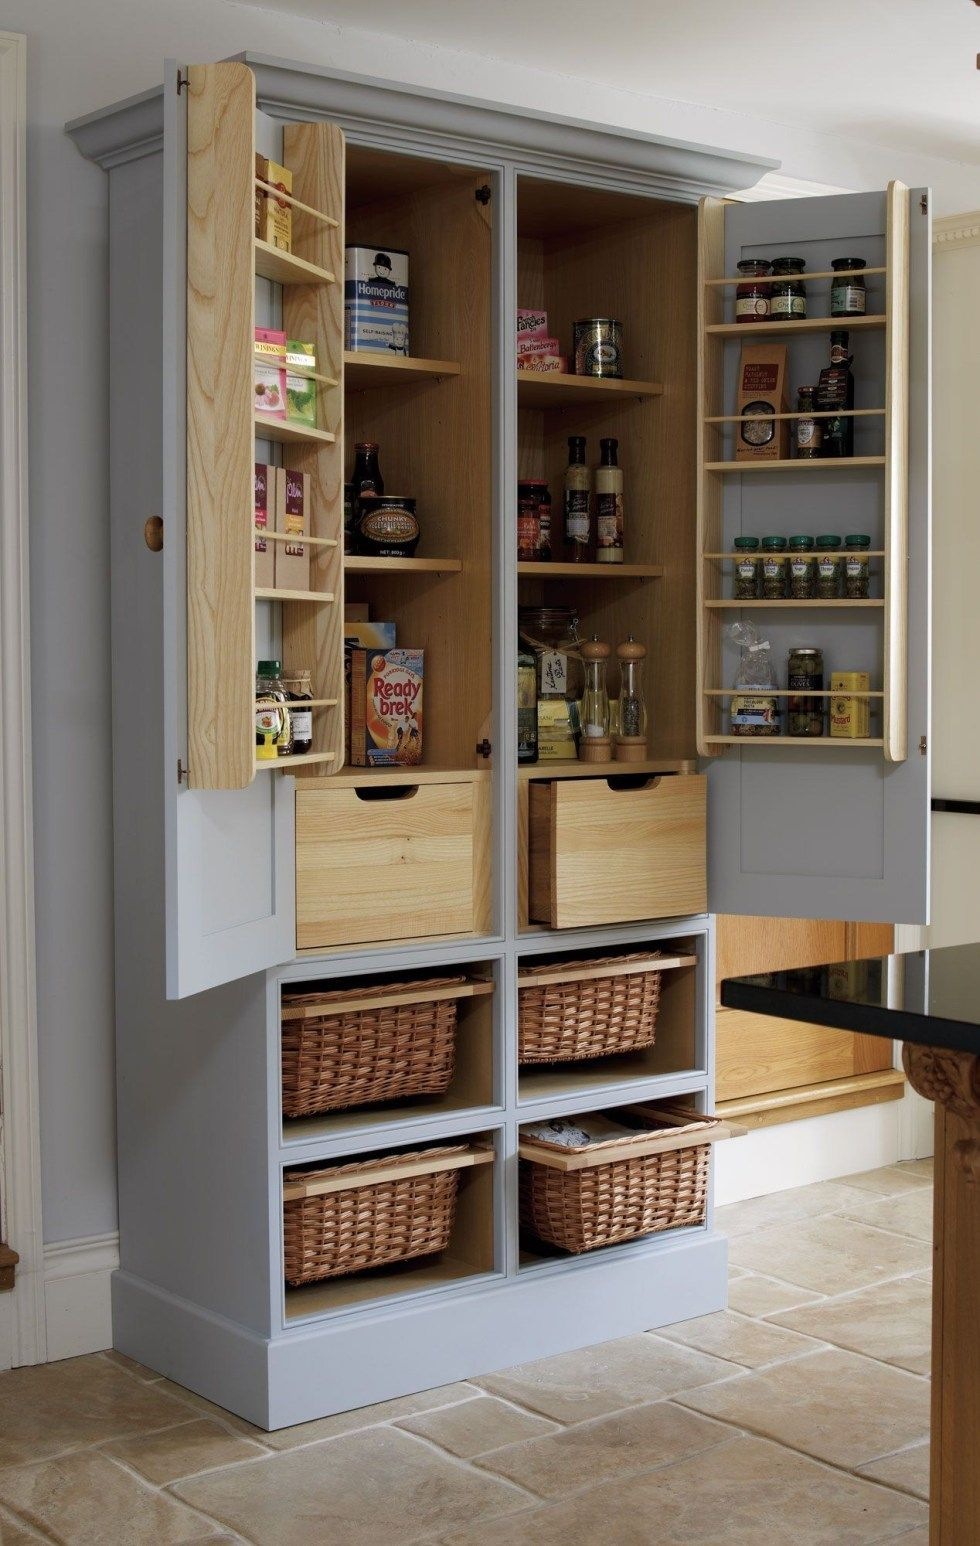 48 Kitchen Pantry Ideas with Form and Function - Pantry design, Kitchen pantry design, Kitchen cabinet storage, Kitchen pantry cabinets, Kitchen pantry storage, Kitchen cupboard organization - We all know that there are so many items that you can find in the kitchen  And if we're not organizing it carefully, your kitchen pantry can quickly become a disaster area  For a better kitchen pantry organization, consider to use clear storage containers to transfer your food items into matching jars to make your pantry look neat and tidy; flours, seeds, nuts, small snack, dried fruits, etc  If you have a cabinet, store anything especially the items that you often use the most and not too bulky on the insider of the cabinet door